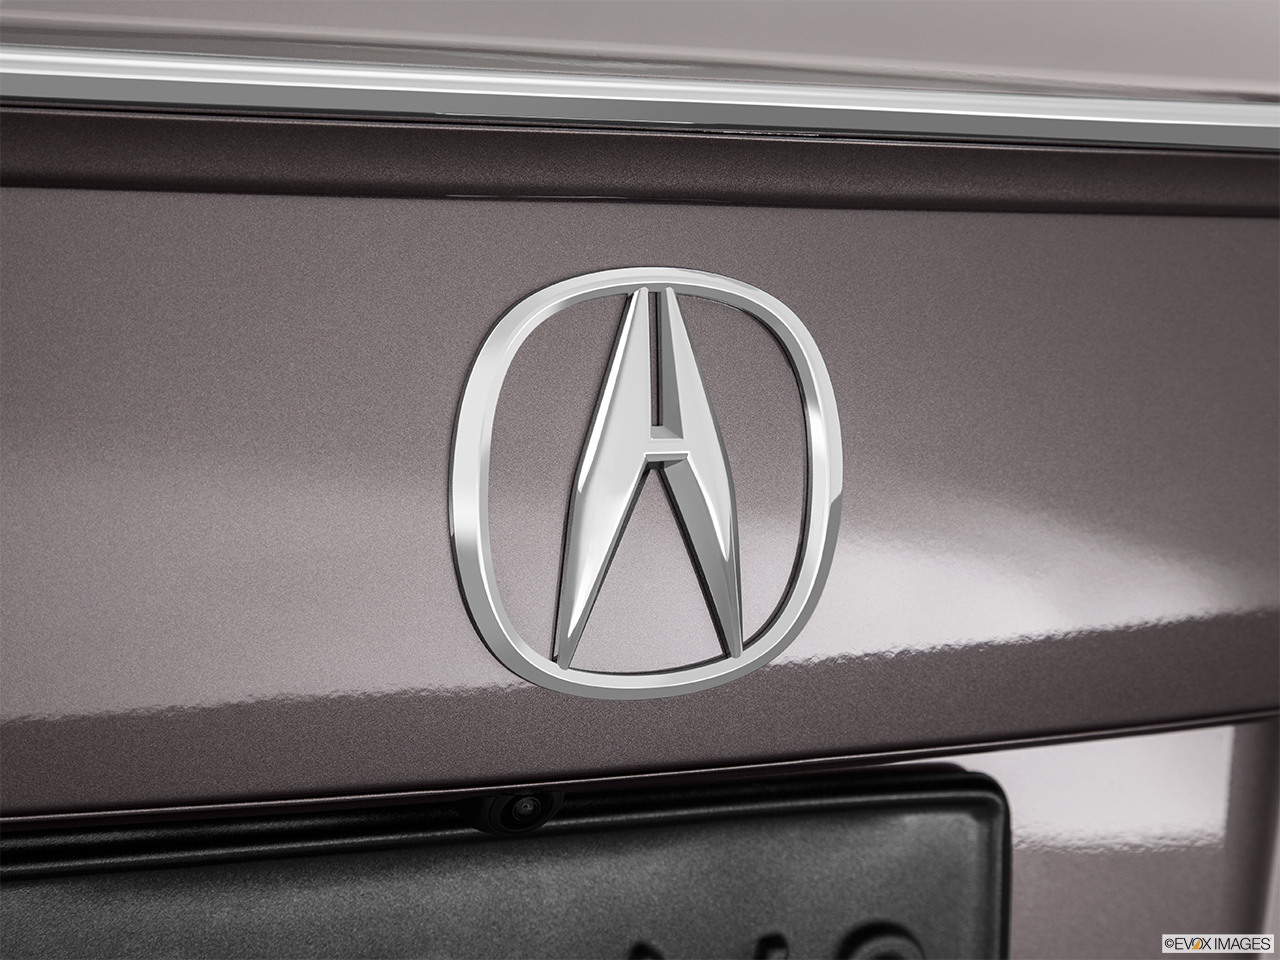 2014 Acura ILX Hybrid Base Rear manufacture badge/emblem